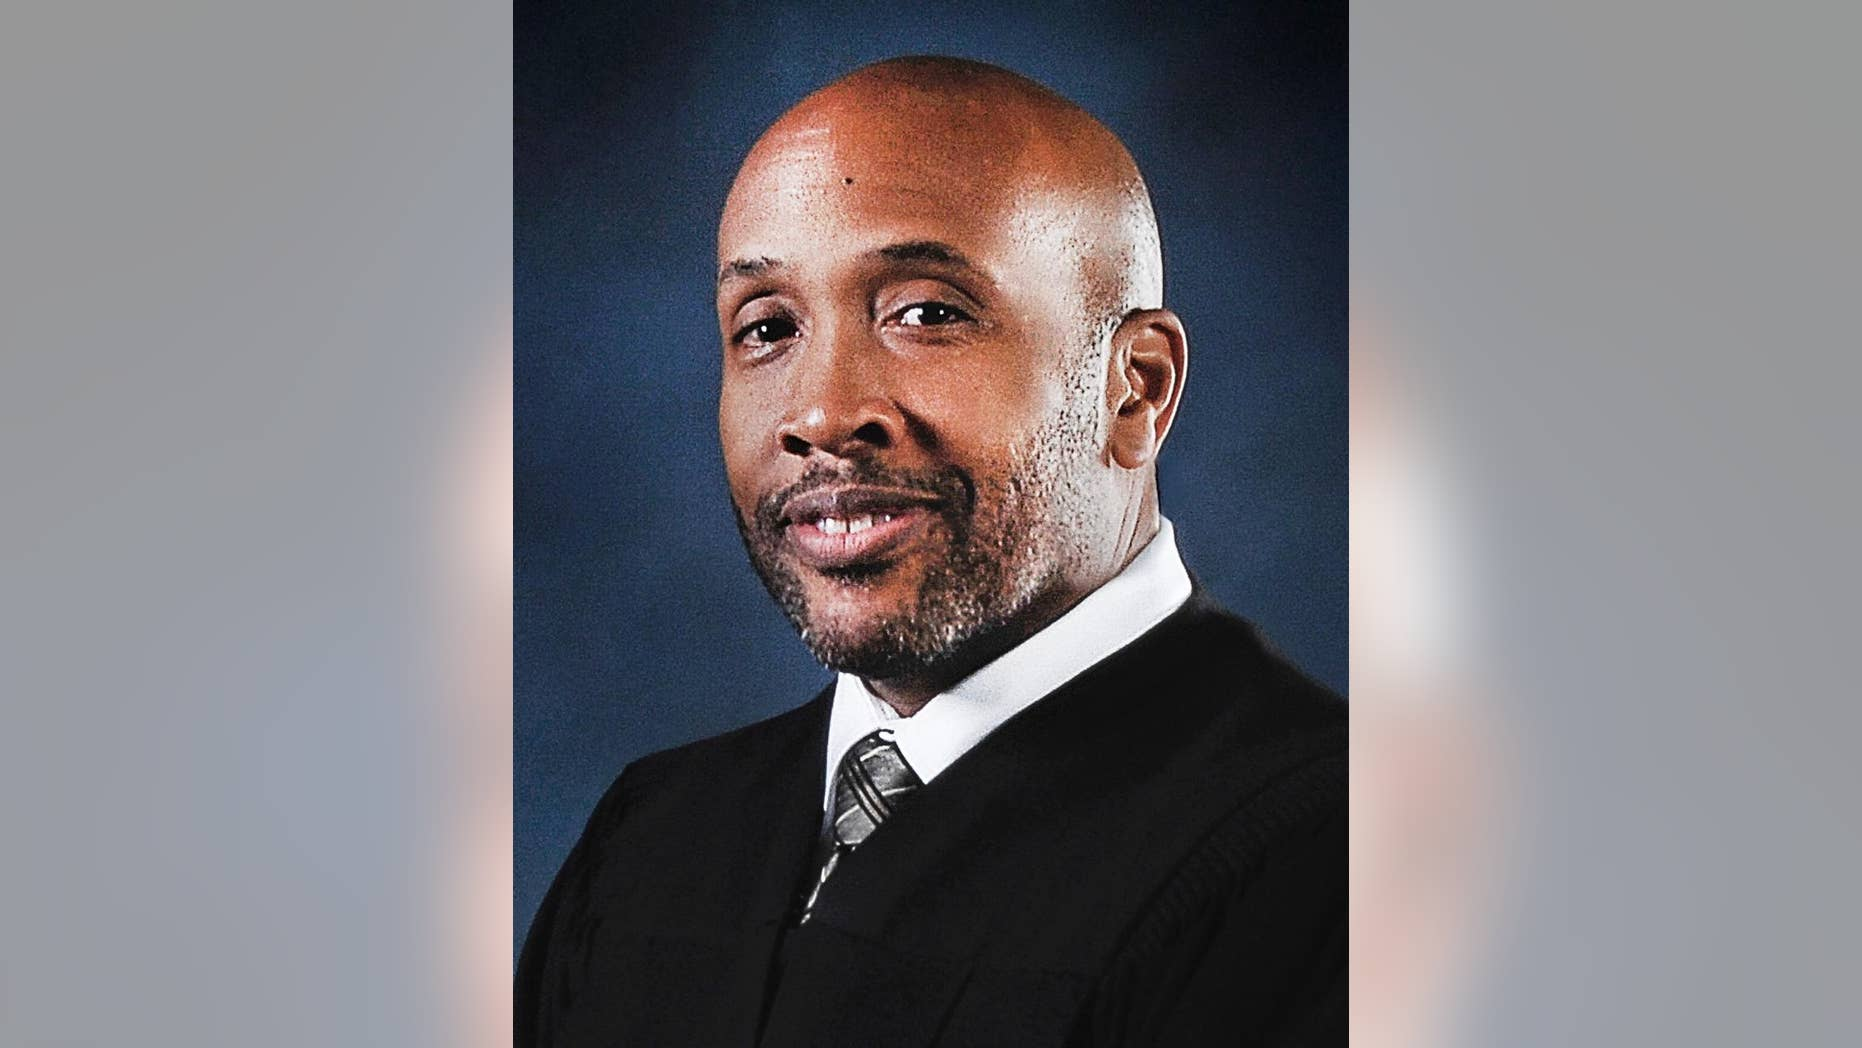 In this undated photo released by the Maryland Judiciary Office of Communications and Public Affairs, Baltimore Circuit Judge Barry Williams poses for a photo. Judge Williams  who's overseeing the emotionally charged case of a young black man who died in police custody is a former federal prosecutor who used to put dirty police officers on trial. Friends and colleagues describe Baltimore Circuit Judge Williams as an even-handed judge who has a sense of humor but doesn't tolerate any courtroom grandstanding. People on both sides of the Freddie Gray case agree that he is the best judge for the job.(Maryland Judiciary Office of Communications and Public Affairs via AP)